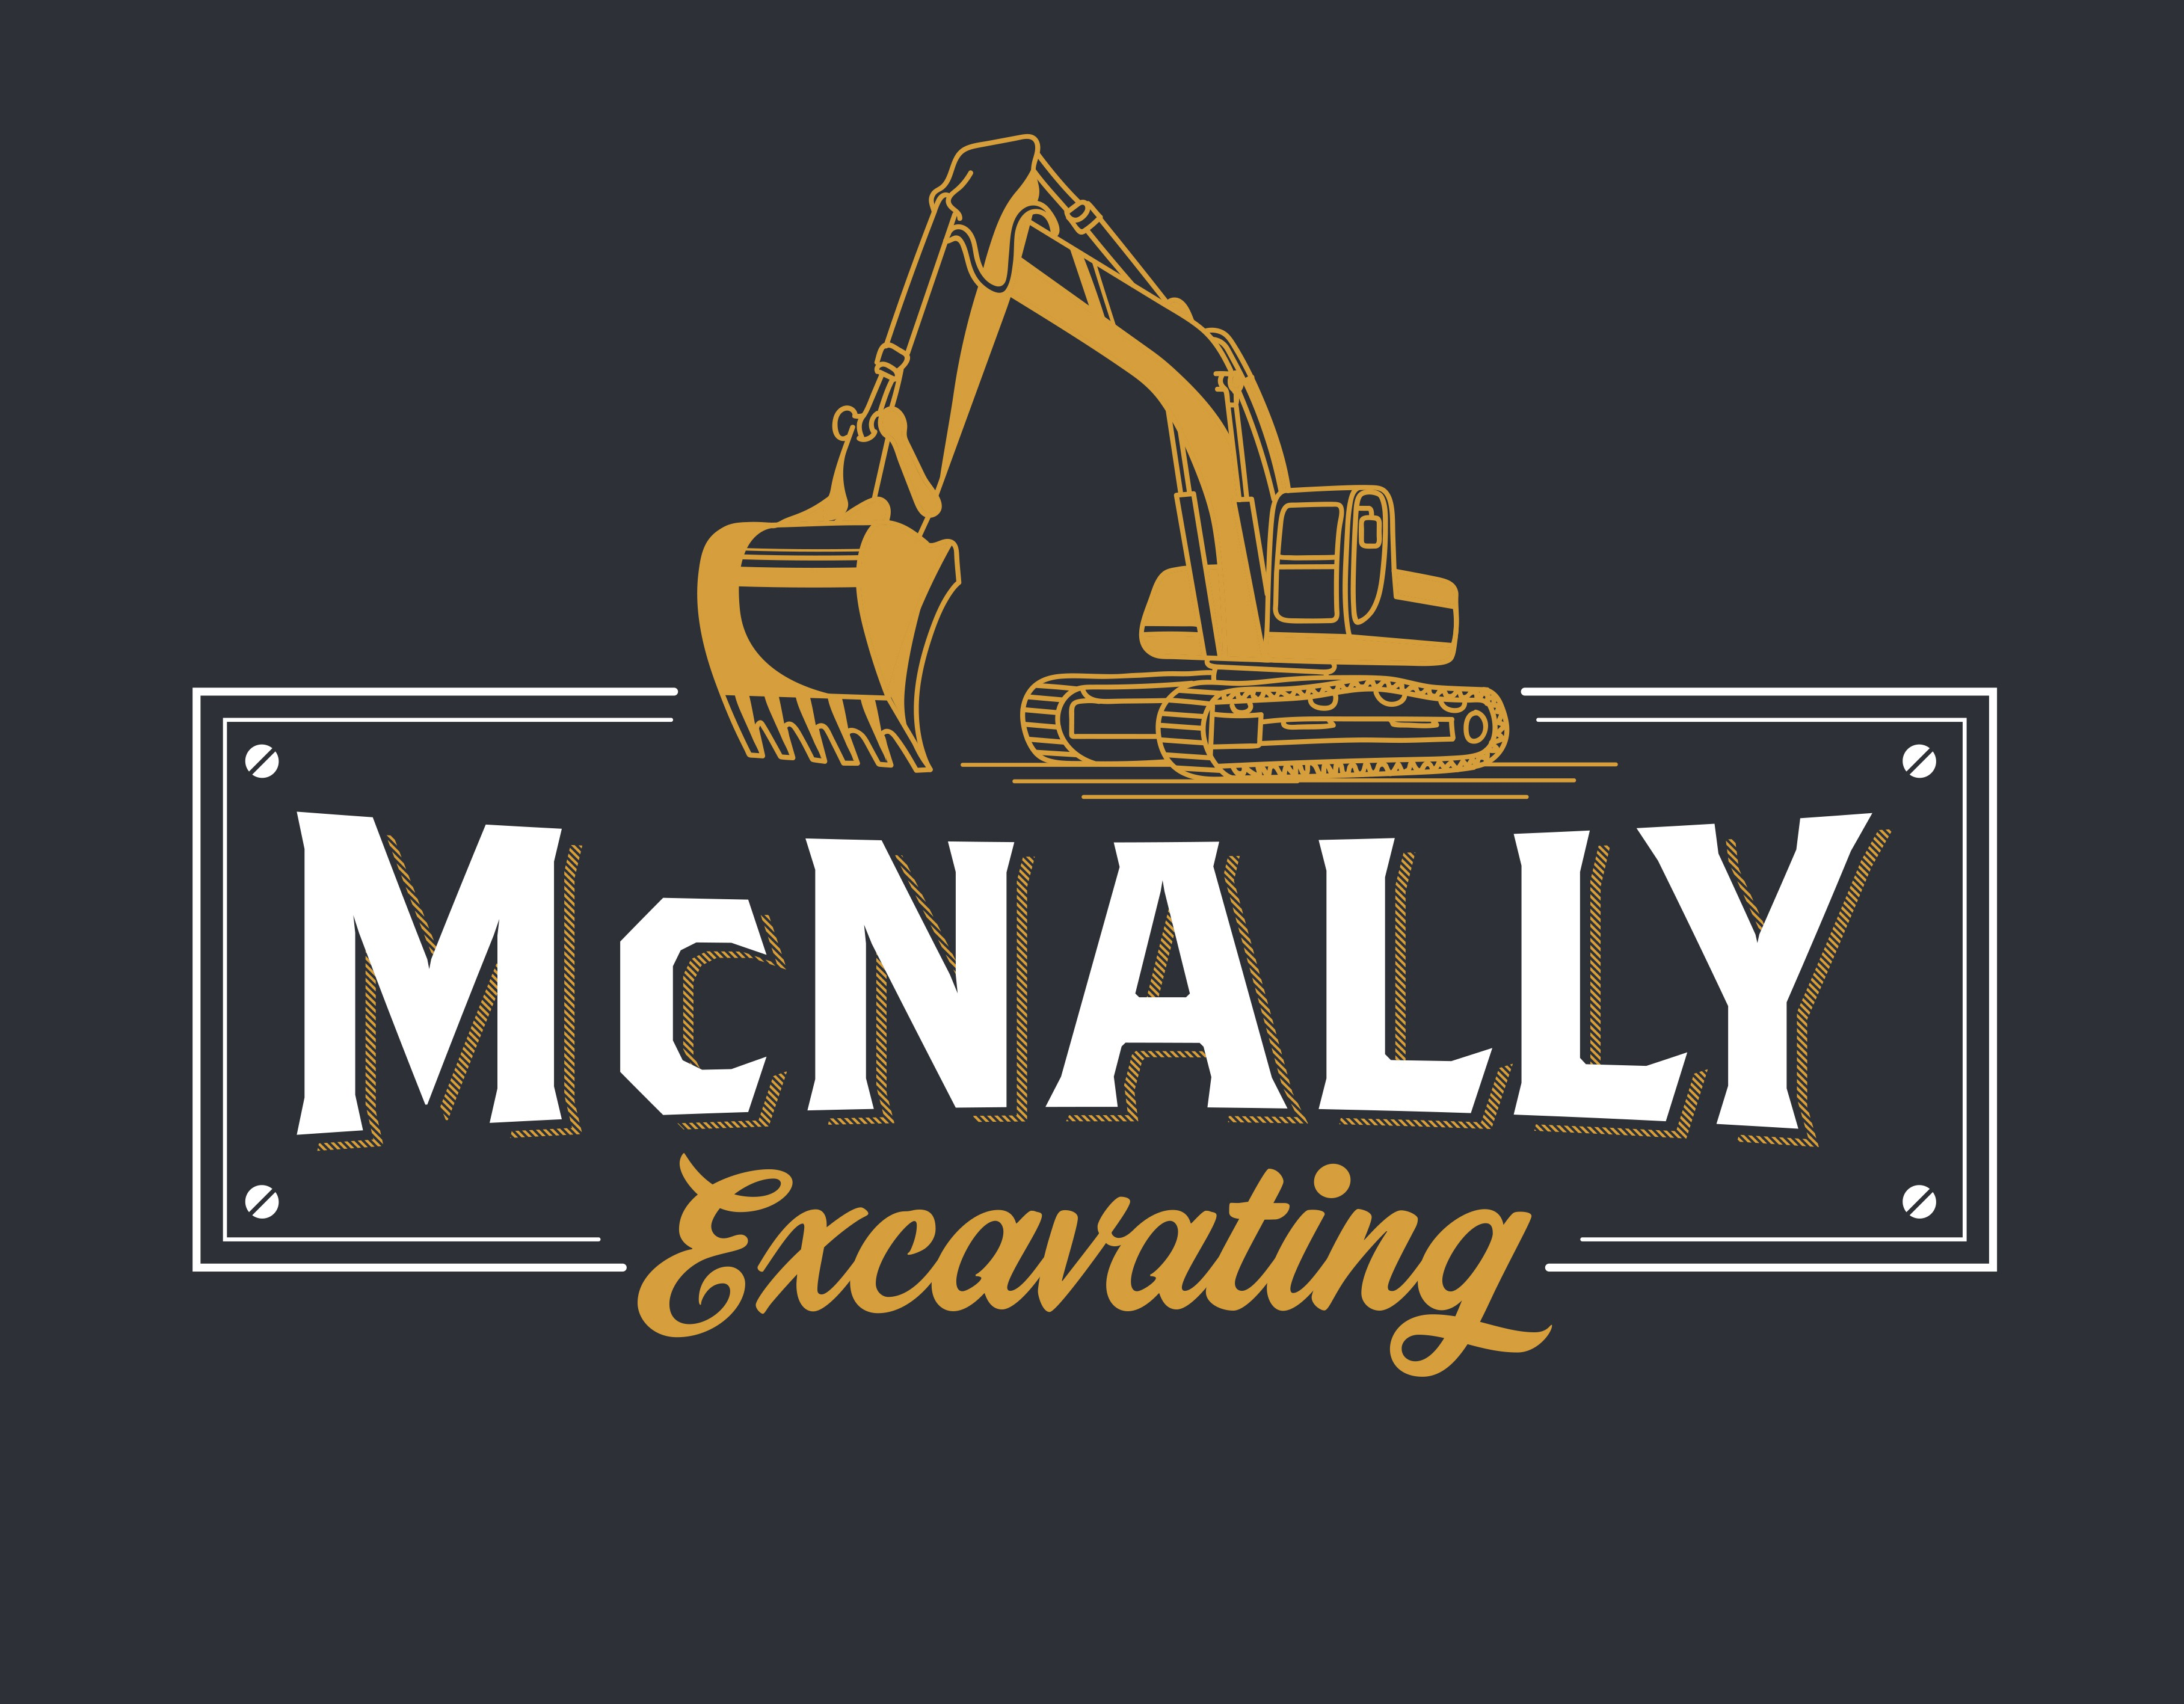 Create a Vintage T-Shirt Design for an Excavating (Heavy Equipment) Company